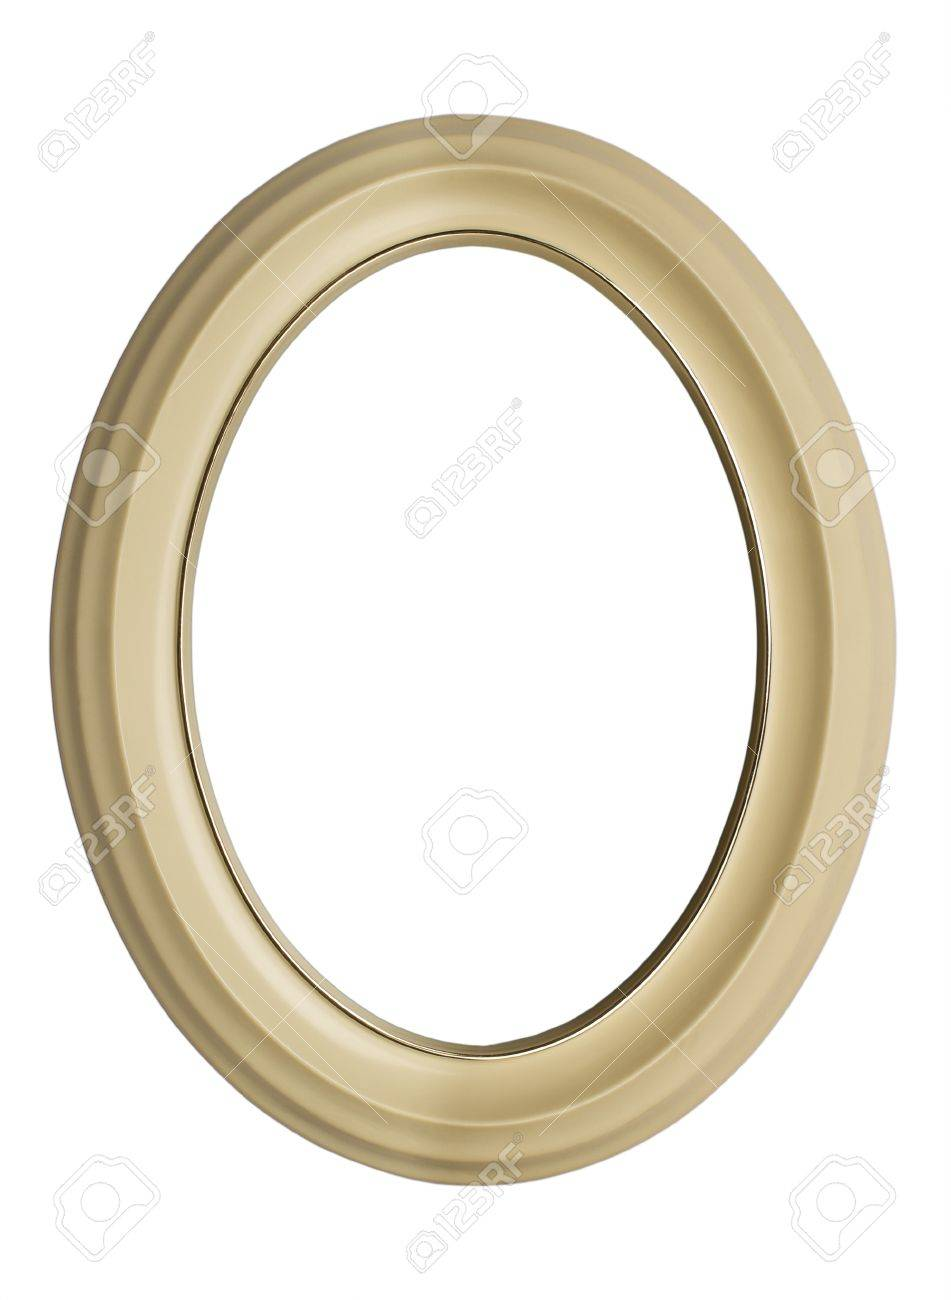 White Oval Frame Isolated On White Background Stock Photo, Picture ...